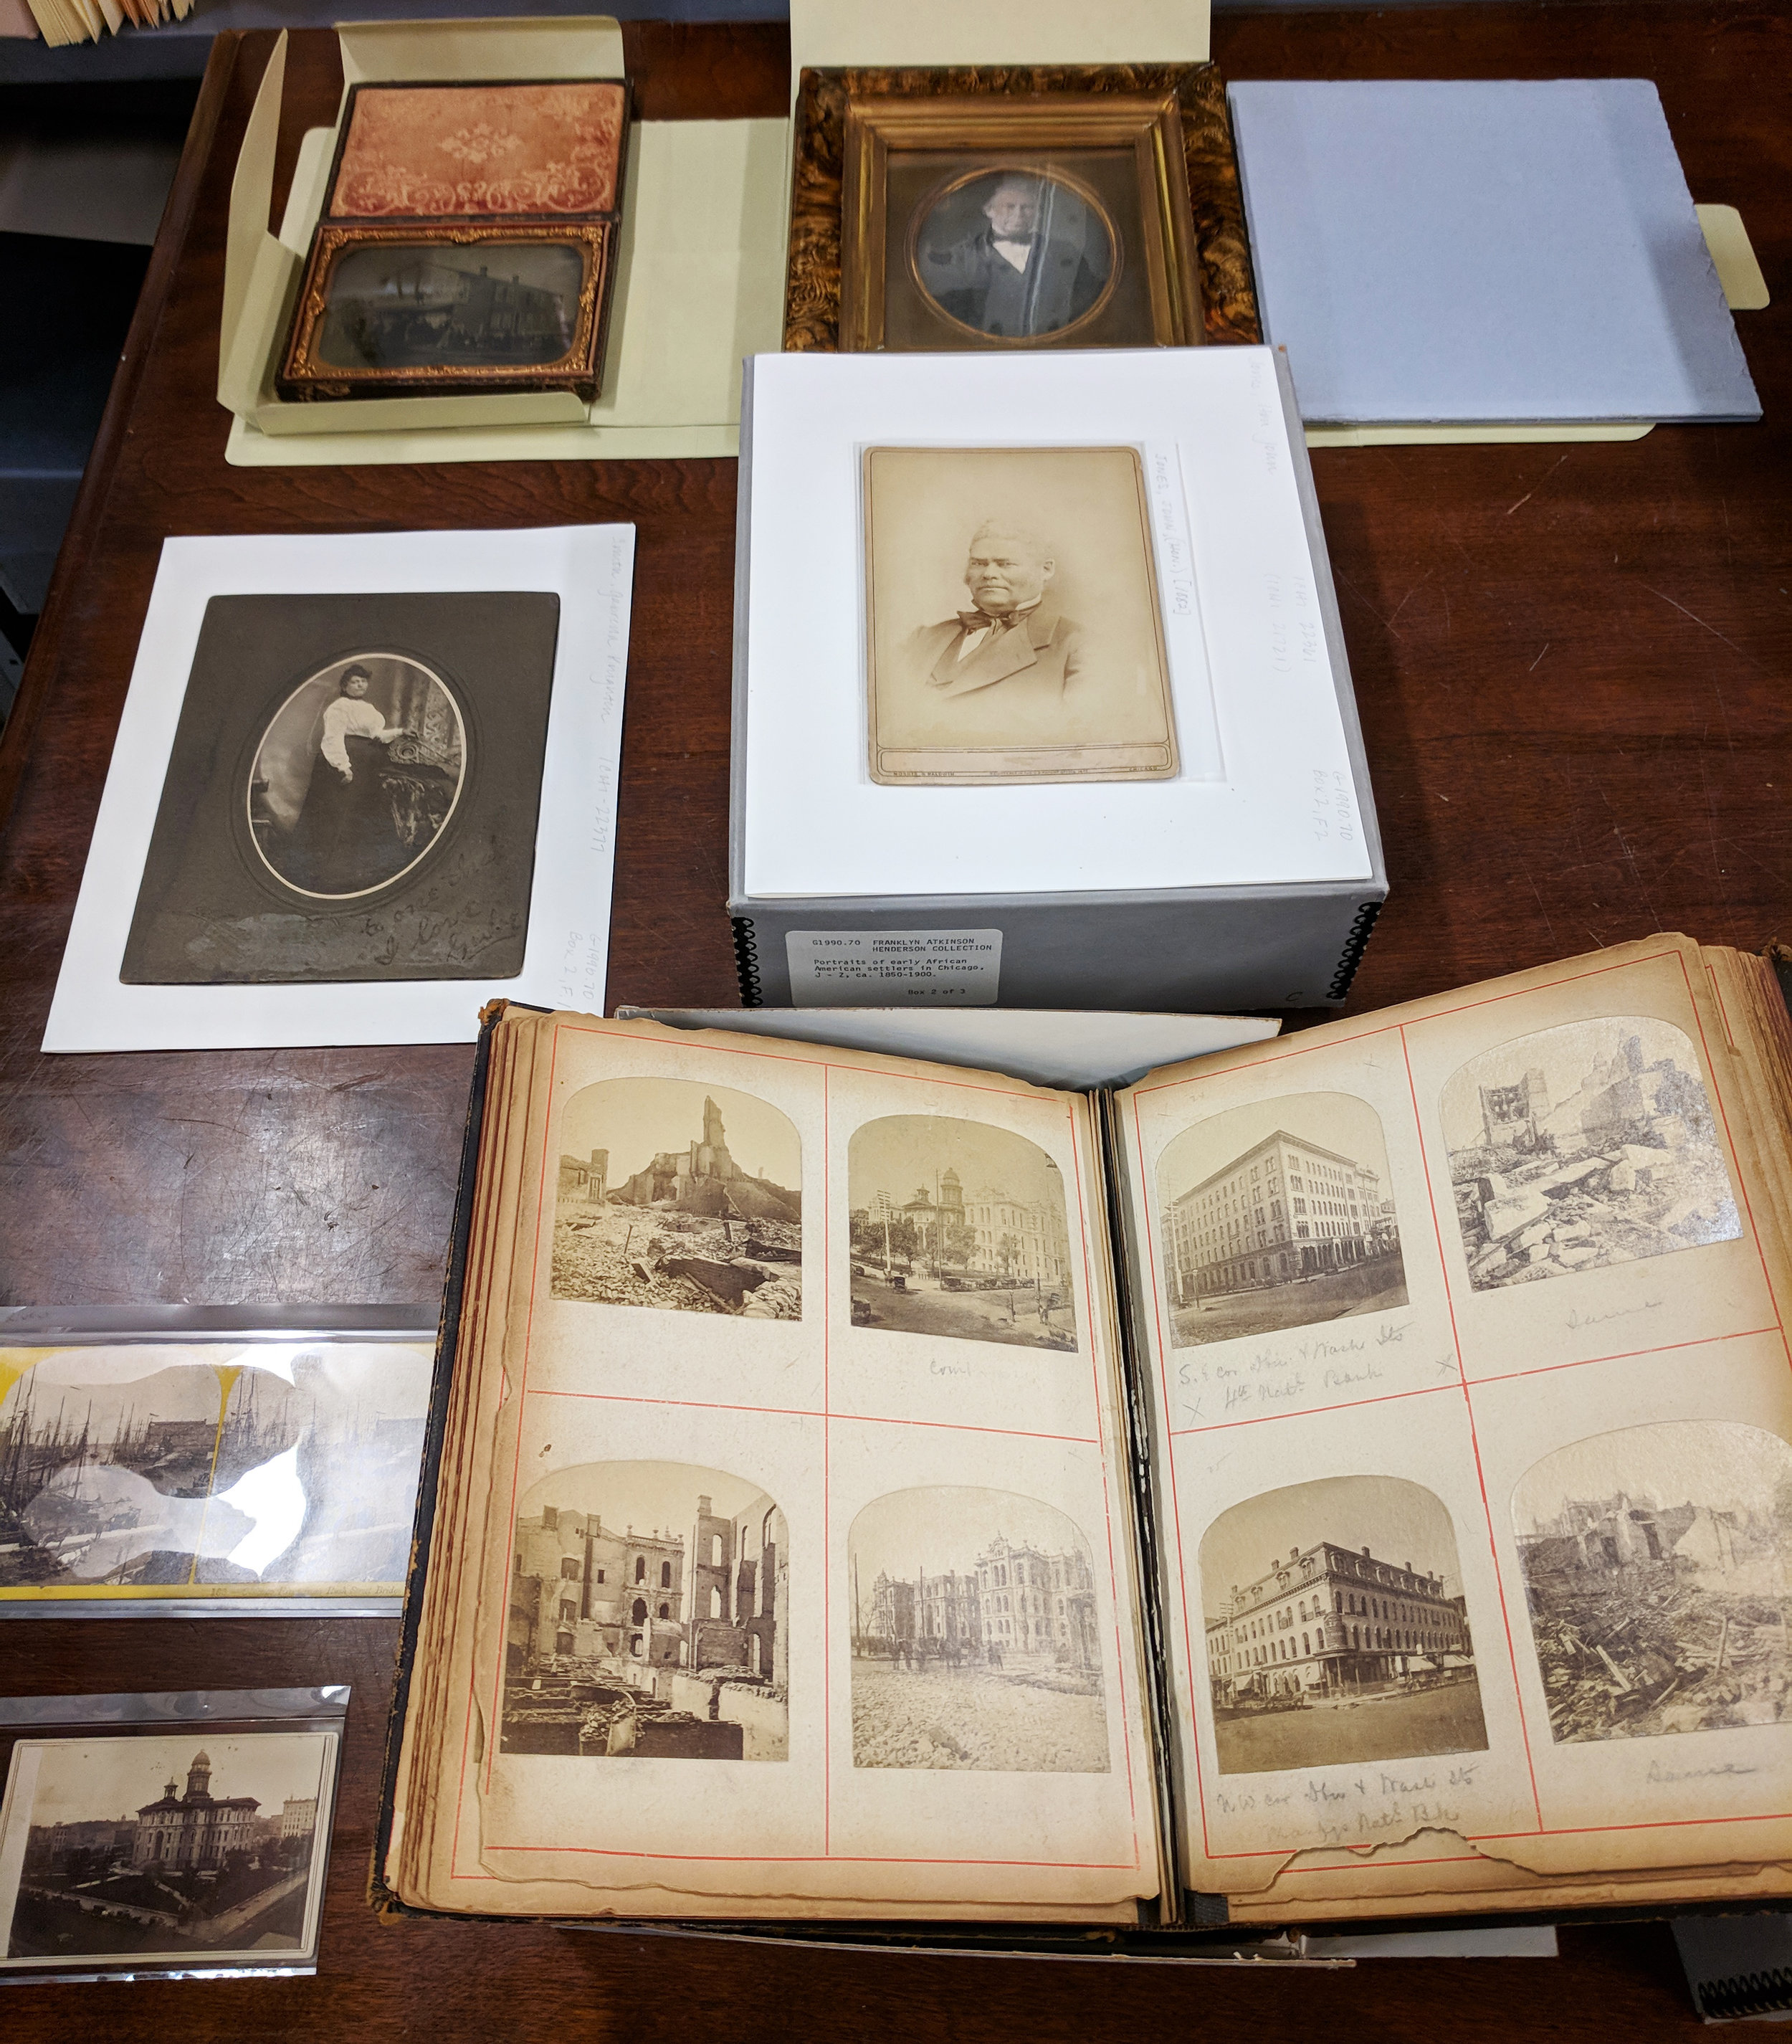 Early processes in CHM's collection